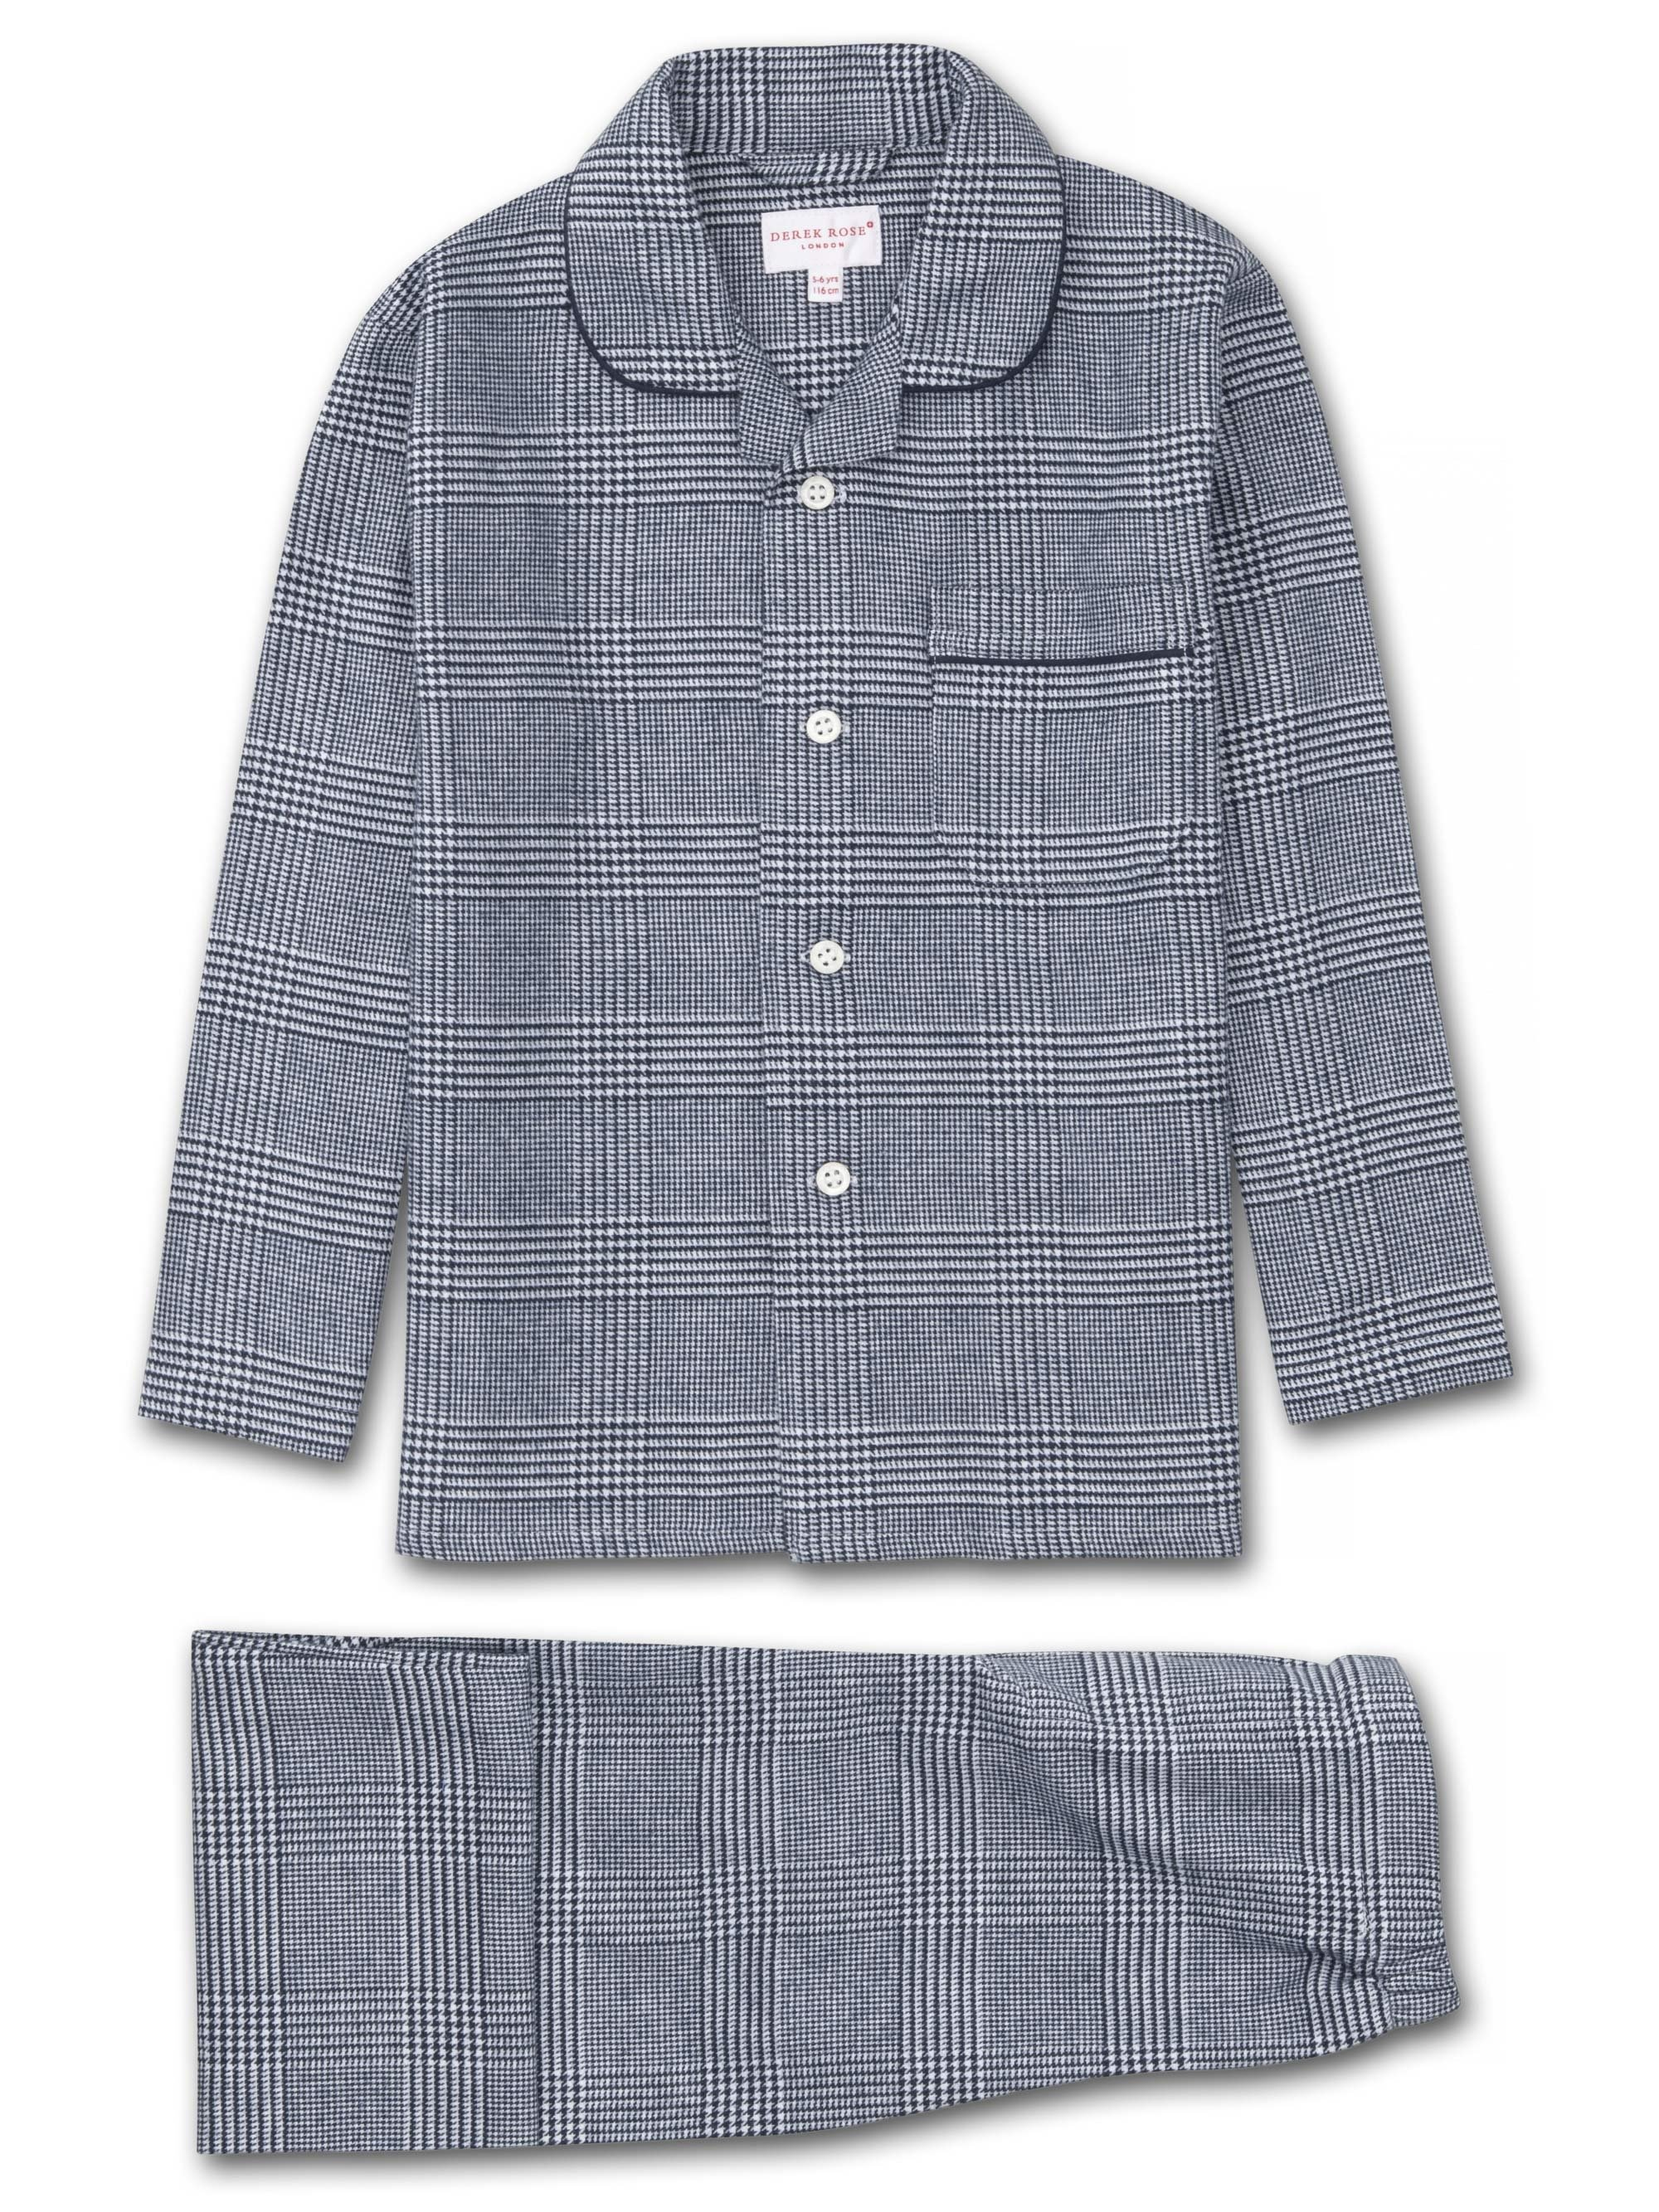 Kids' Pyjamas Kelburn 10 Brushed Cotton Check Navy